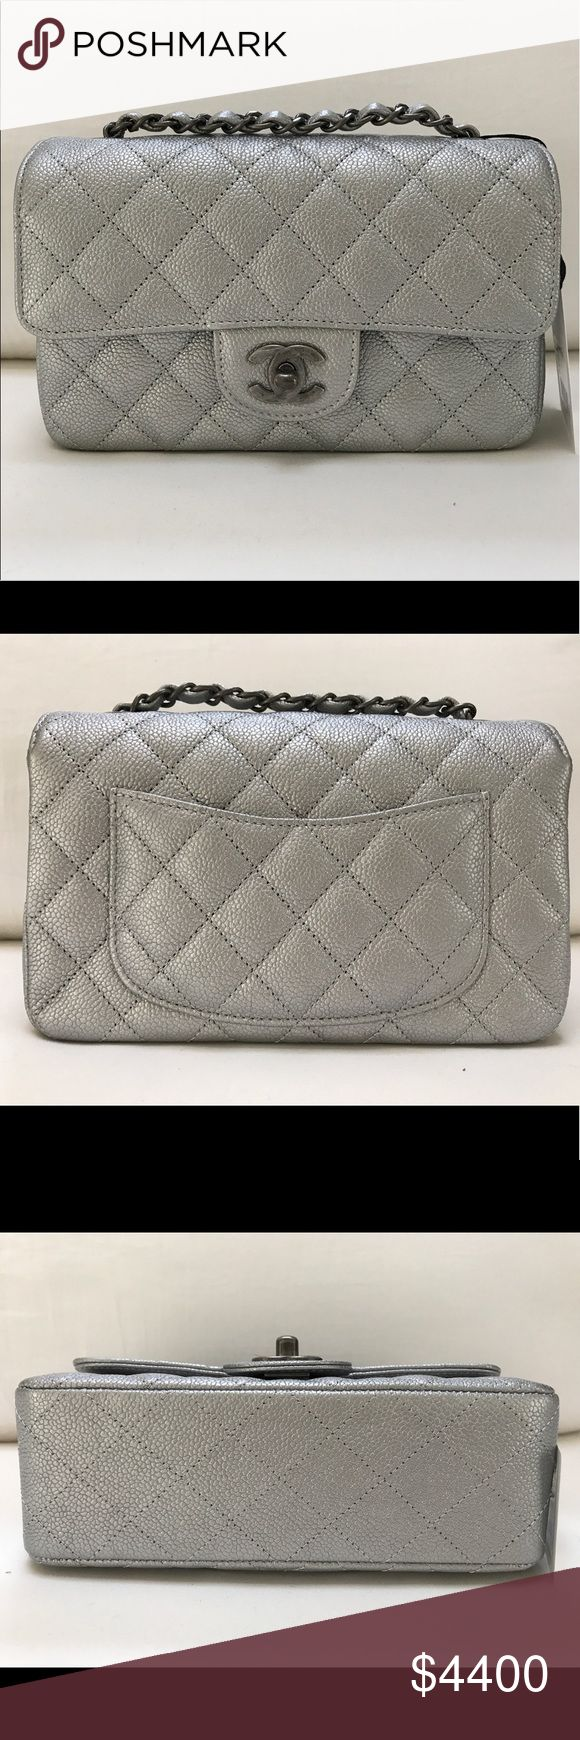 ✨BRAND NEW ✨💯AUTHENTIC CHANEL MINI FLAP CAVIAR BRAND NEW CHANEL MINI FLAP CAVIAR SLIVER COLOR WITH SLIVER RUTHENIUM HARDWARE. COME WITH ORIGINAL BOX, DUST BAG, AUTHENTICITY CARD AND BOOKLET ❌NO TRADE ✔️PRICE NEGOTIABLE ( MORE INFO BOONBTCHYNNGHTY@AOL.COM ) CHANEL Bags Crossbody Bags